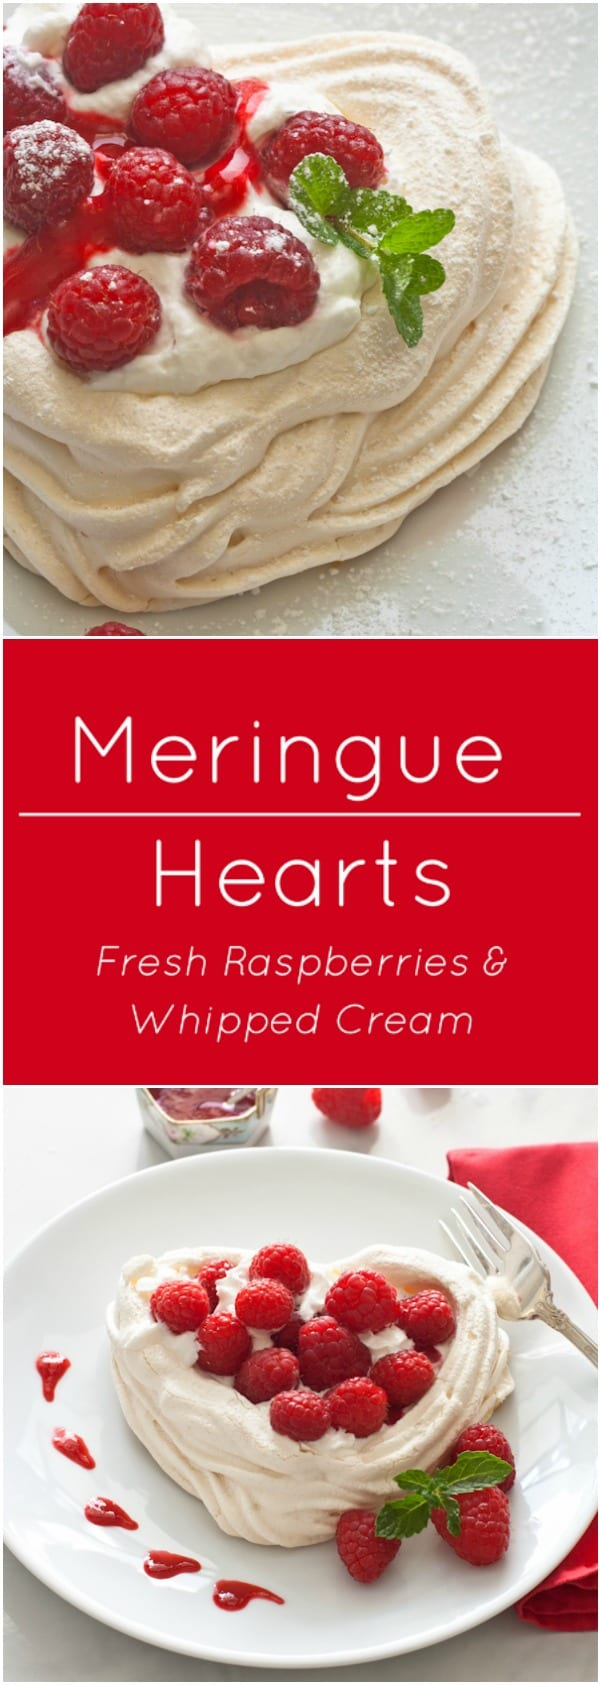 Light and crispy meringue hearts are naturally gluten free. Fill with fresh raspberries and whipped cream.